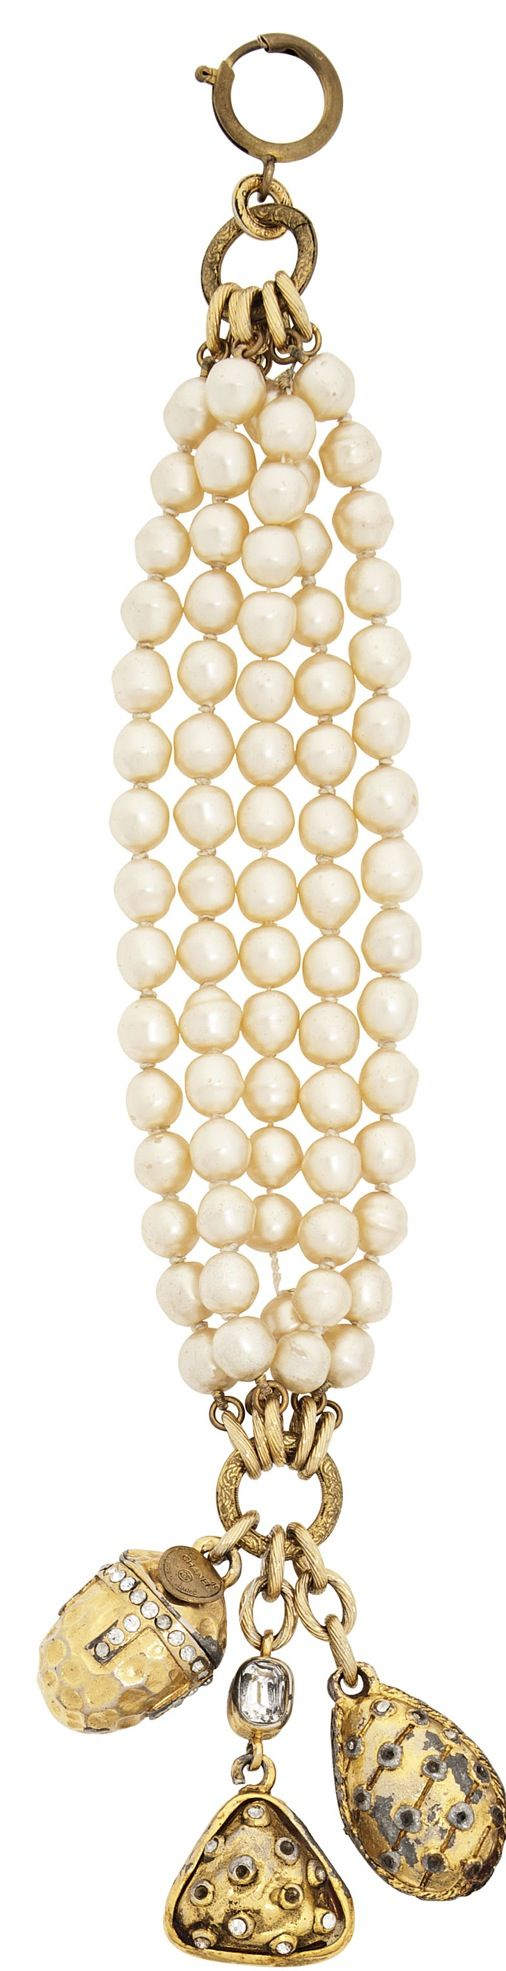 CHANEL: Five Strand, Simulated Pearl Charm Bracelet LBV